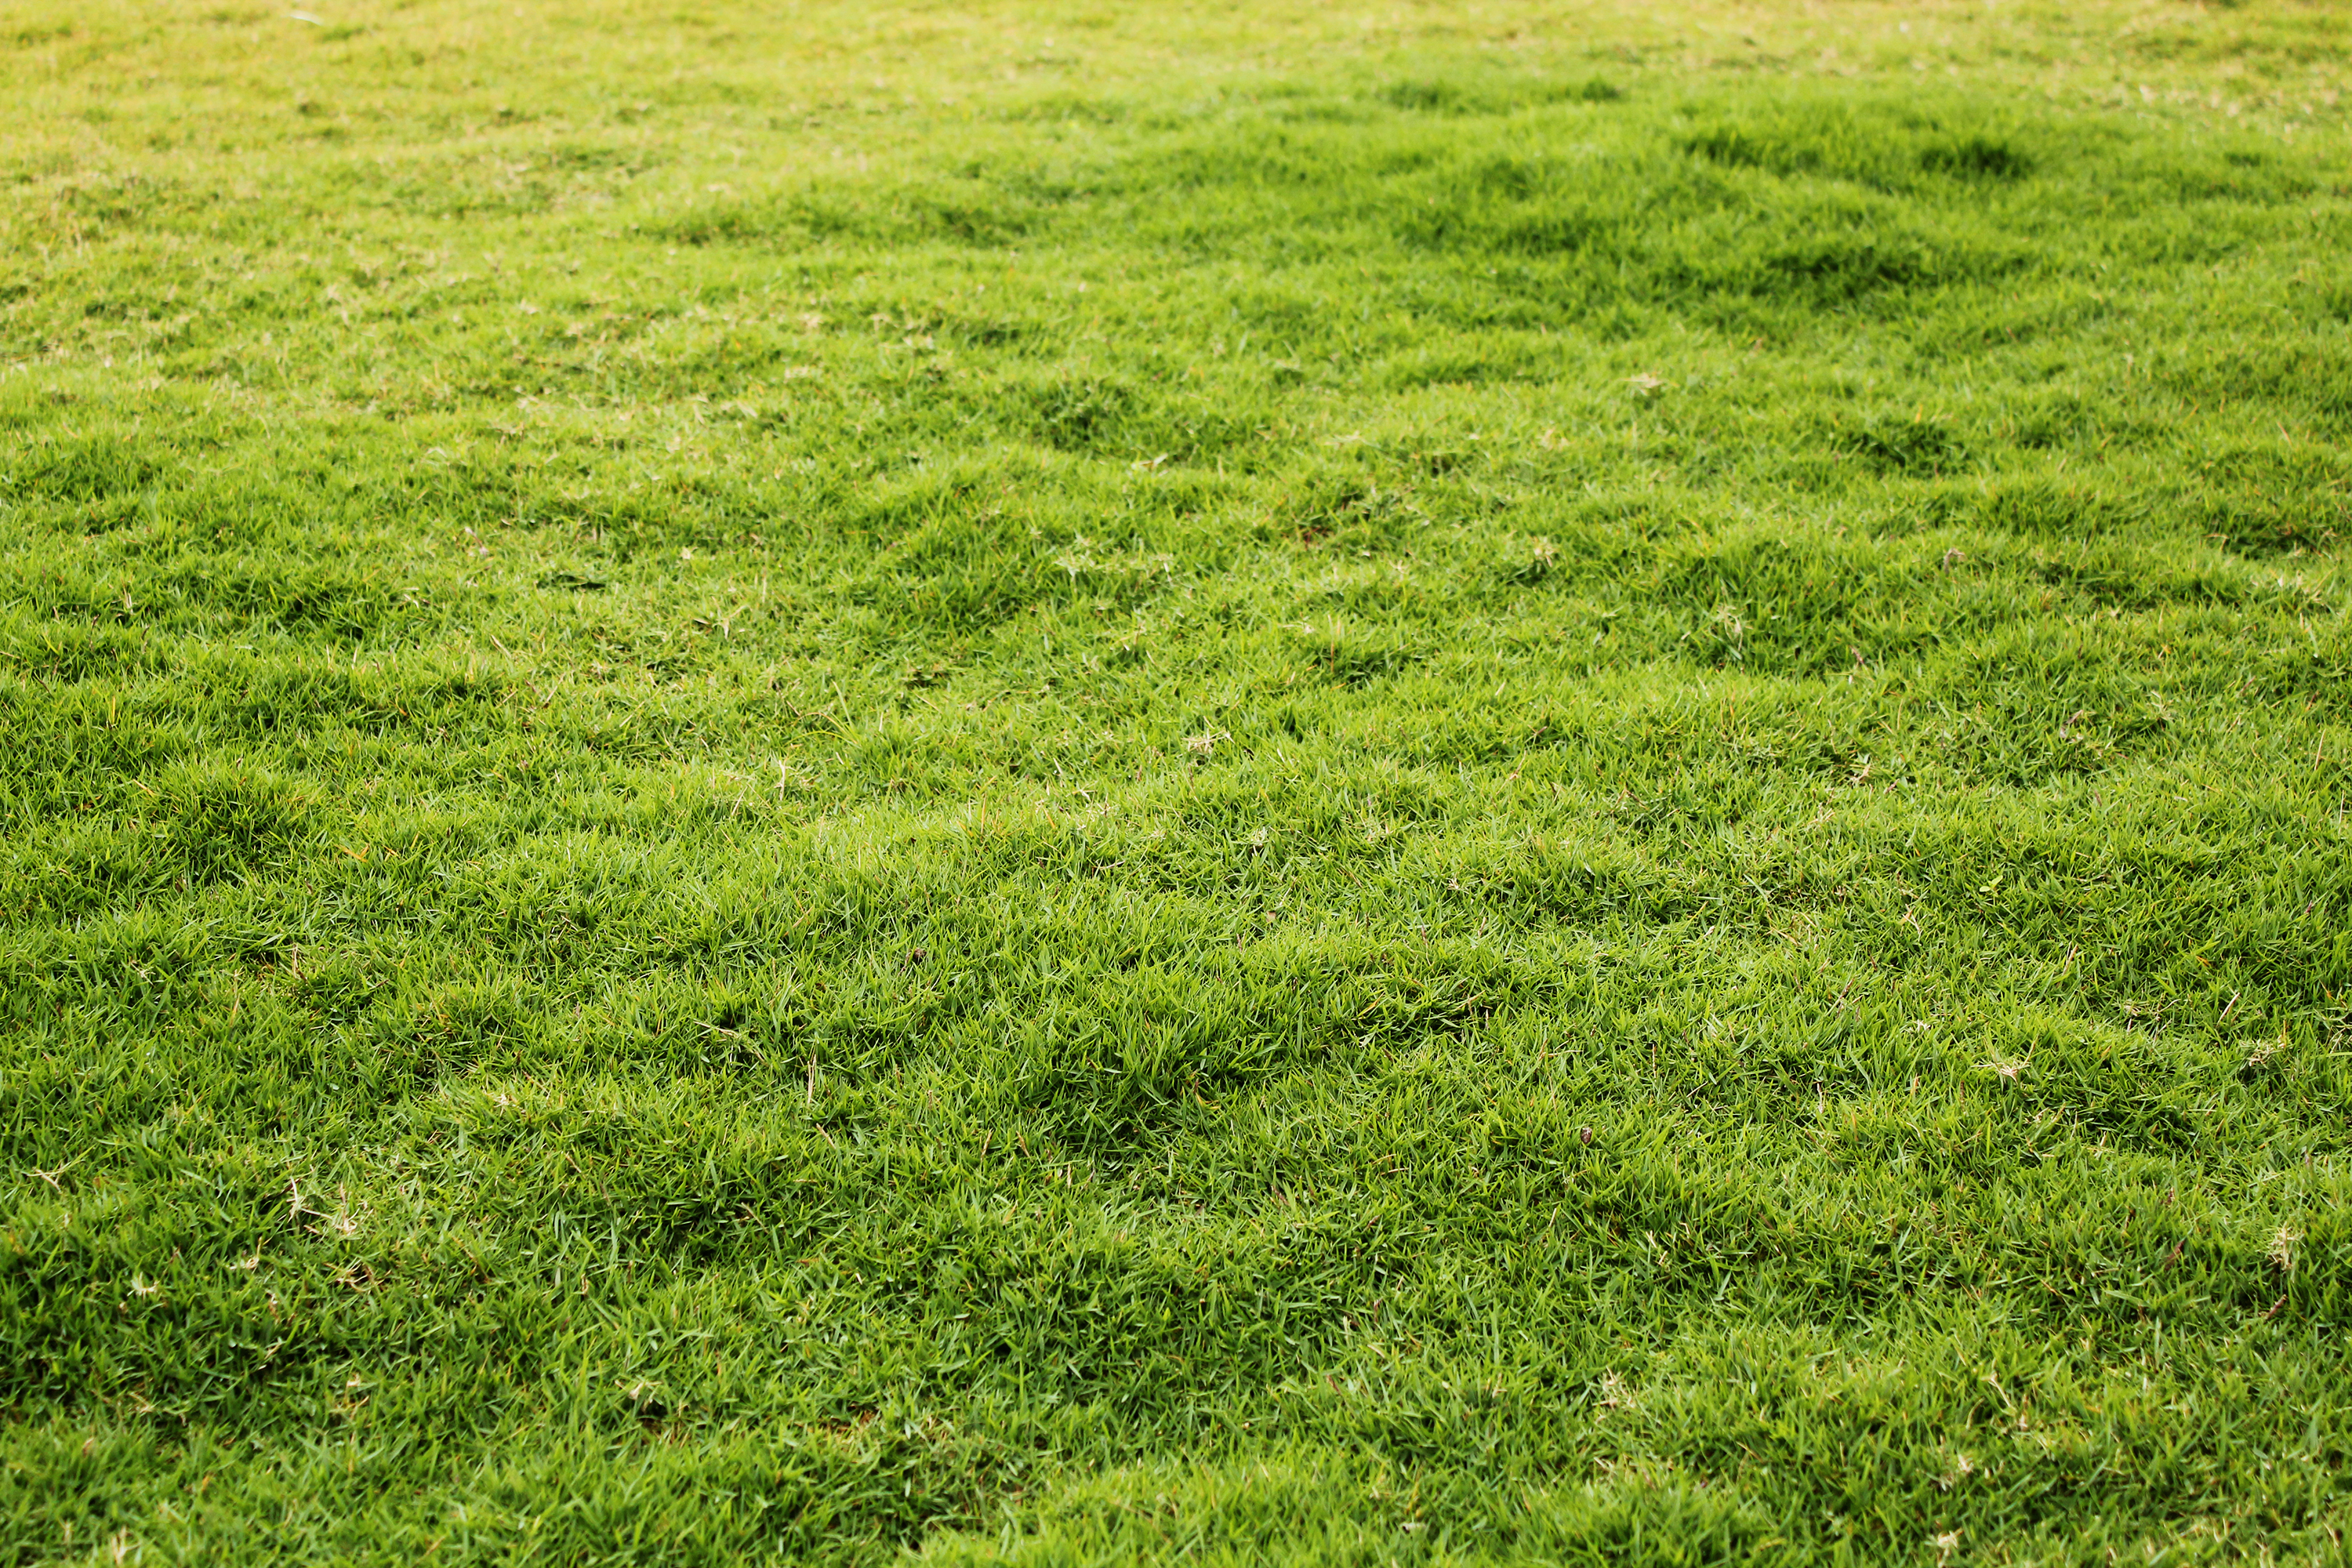 Verdant And Lush Lawn Made Of Green Grass Download Links Free - Dunneiv